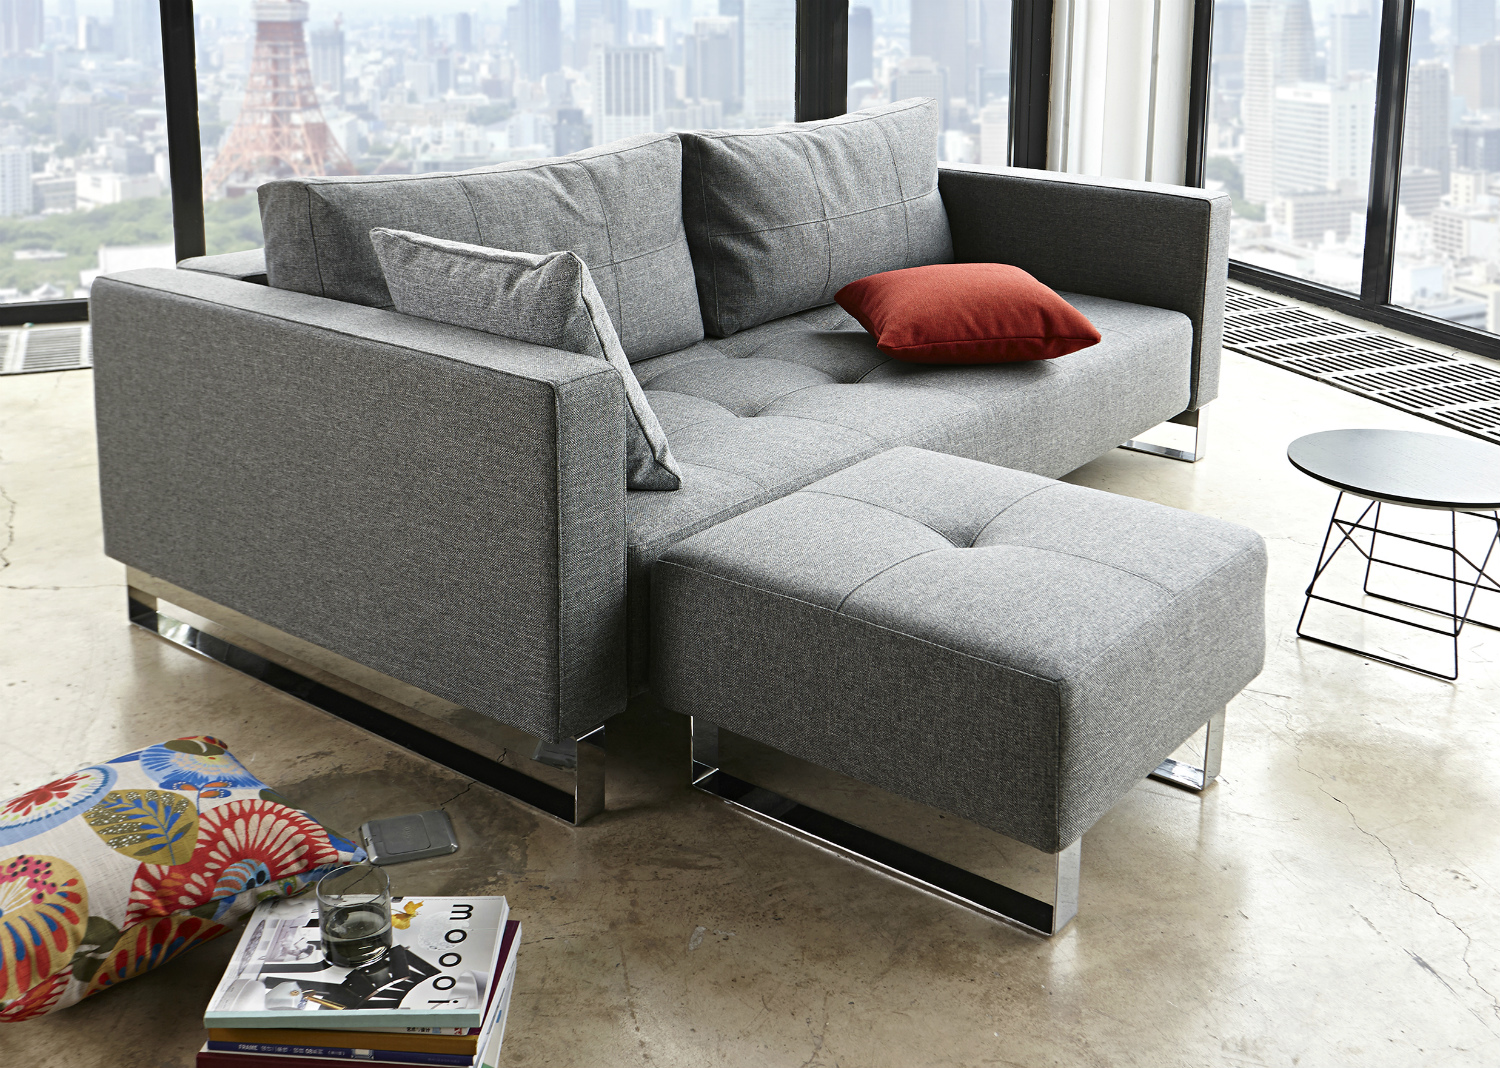 cassius excess  innovation living melbourne - sofa bed